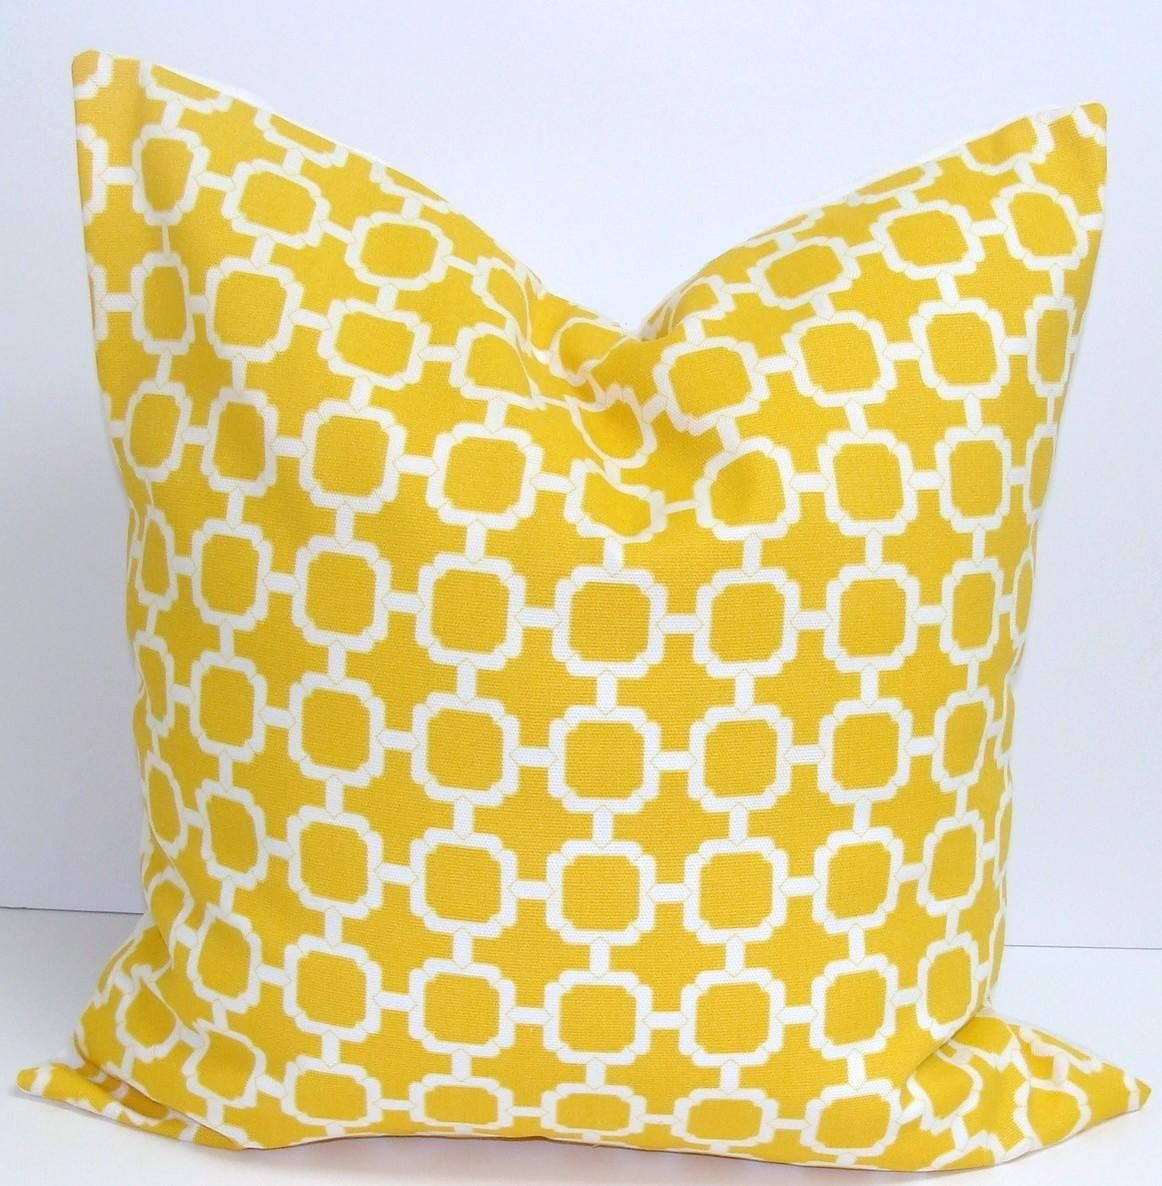 Etsy Has ENDLESS Options For Outdoor Pillows.